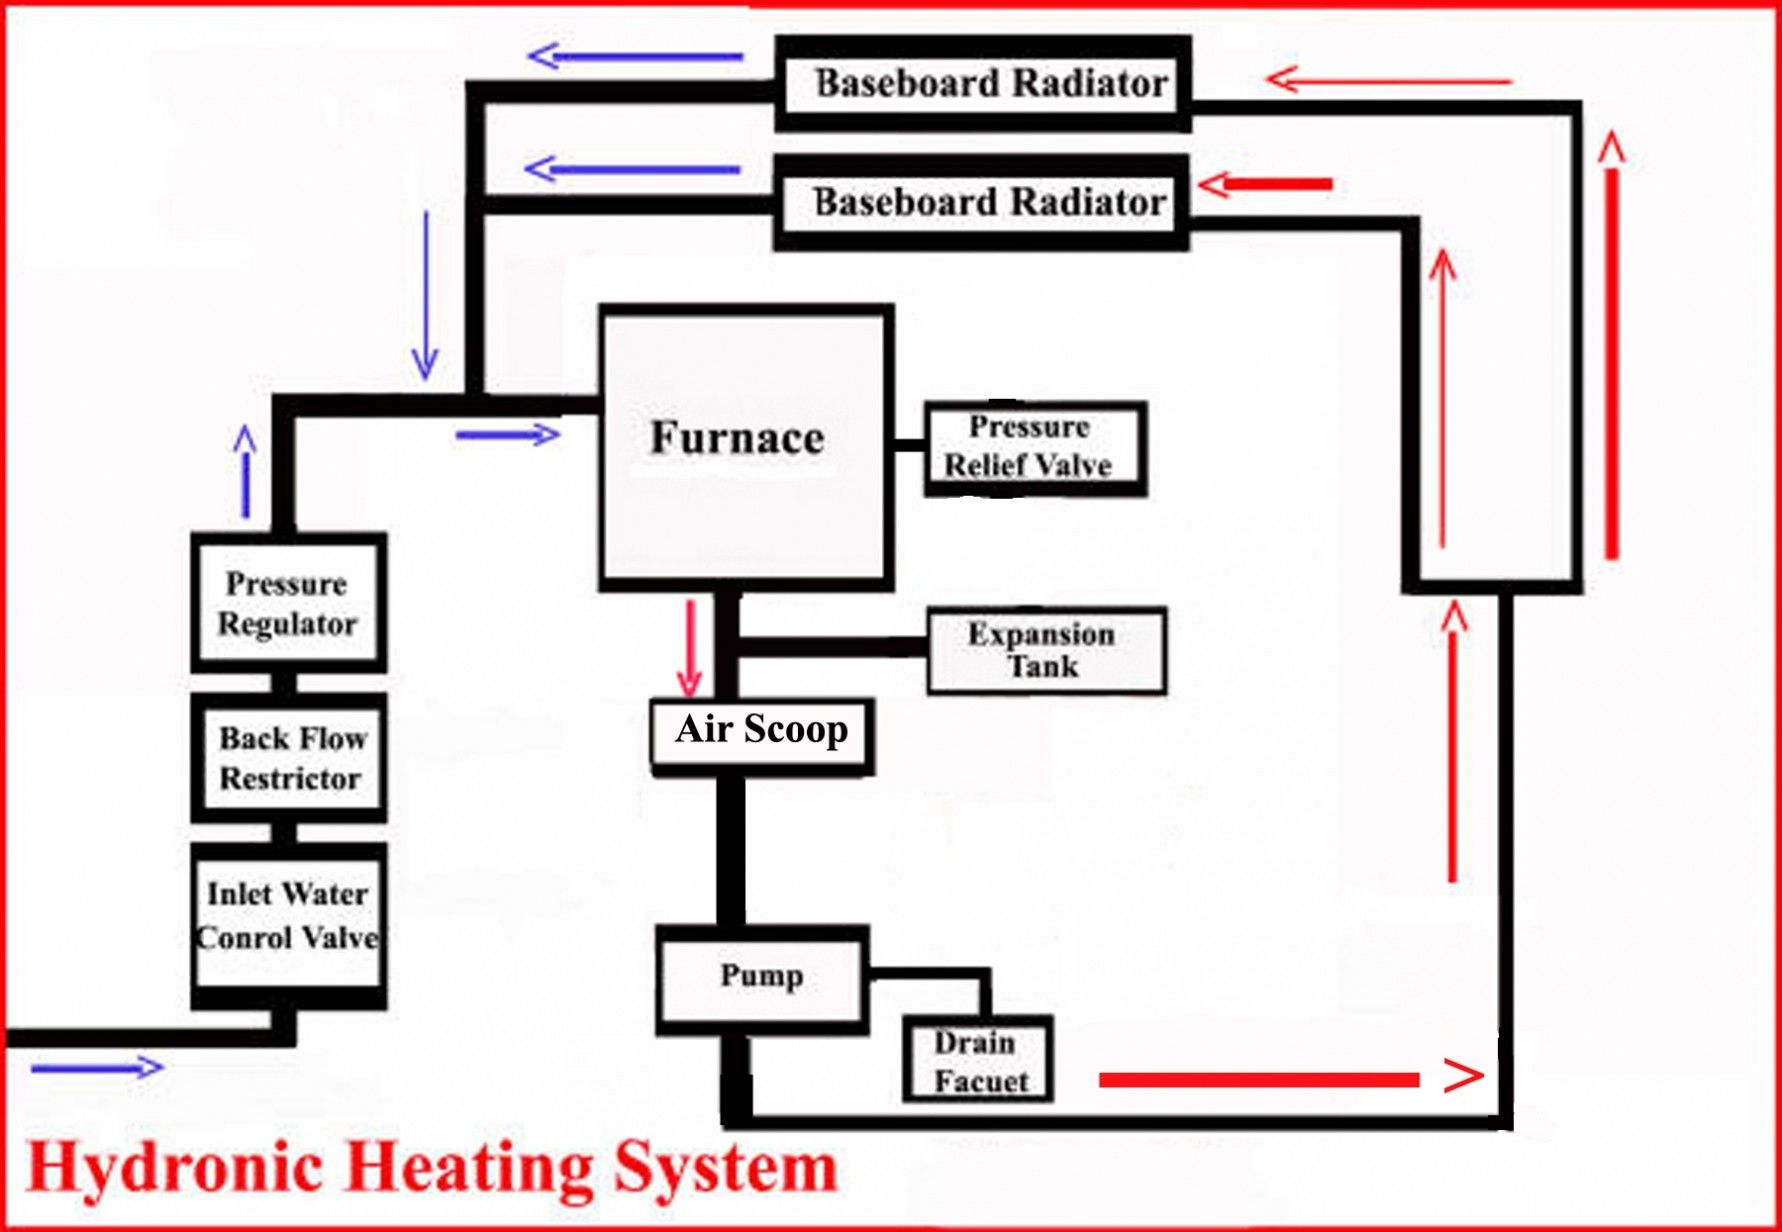 Unique Wiring Diagram for A Central Heating System #diagram  #diagramtemplate #diagramsample | Hydronic Heating Wiring Diagram |  | Pinterest